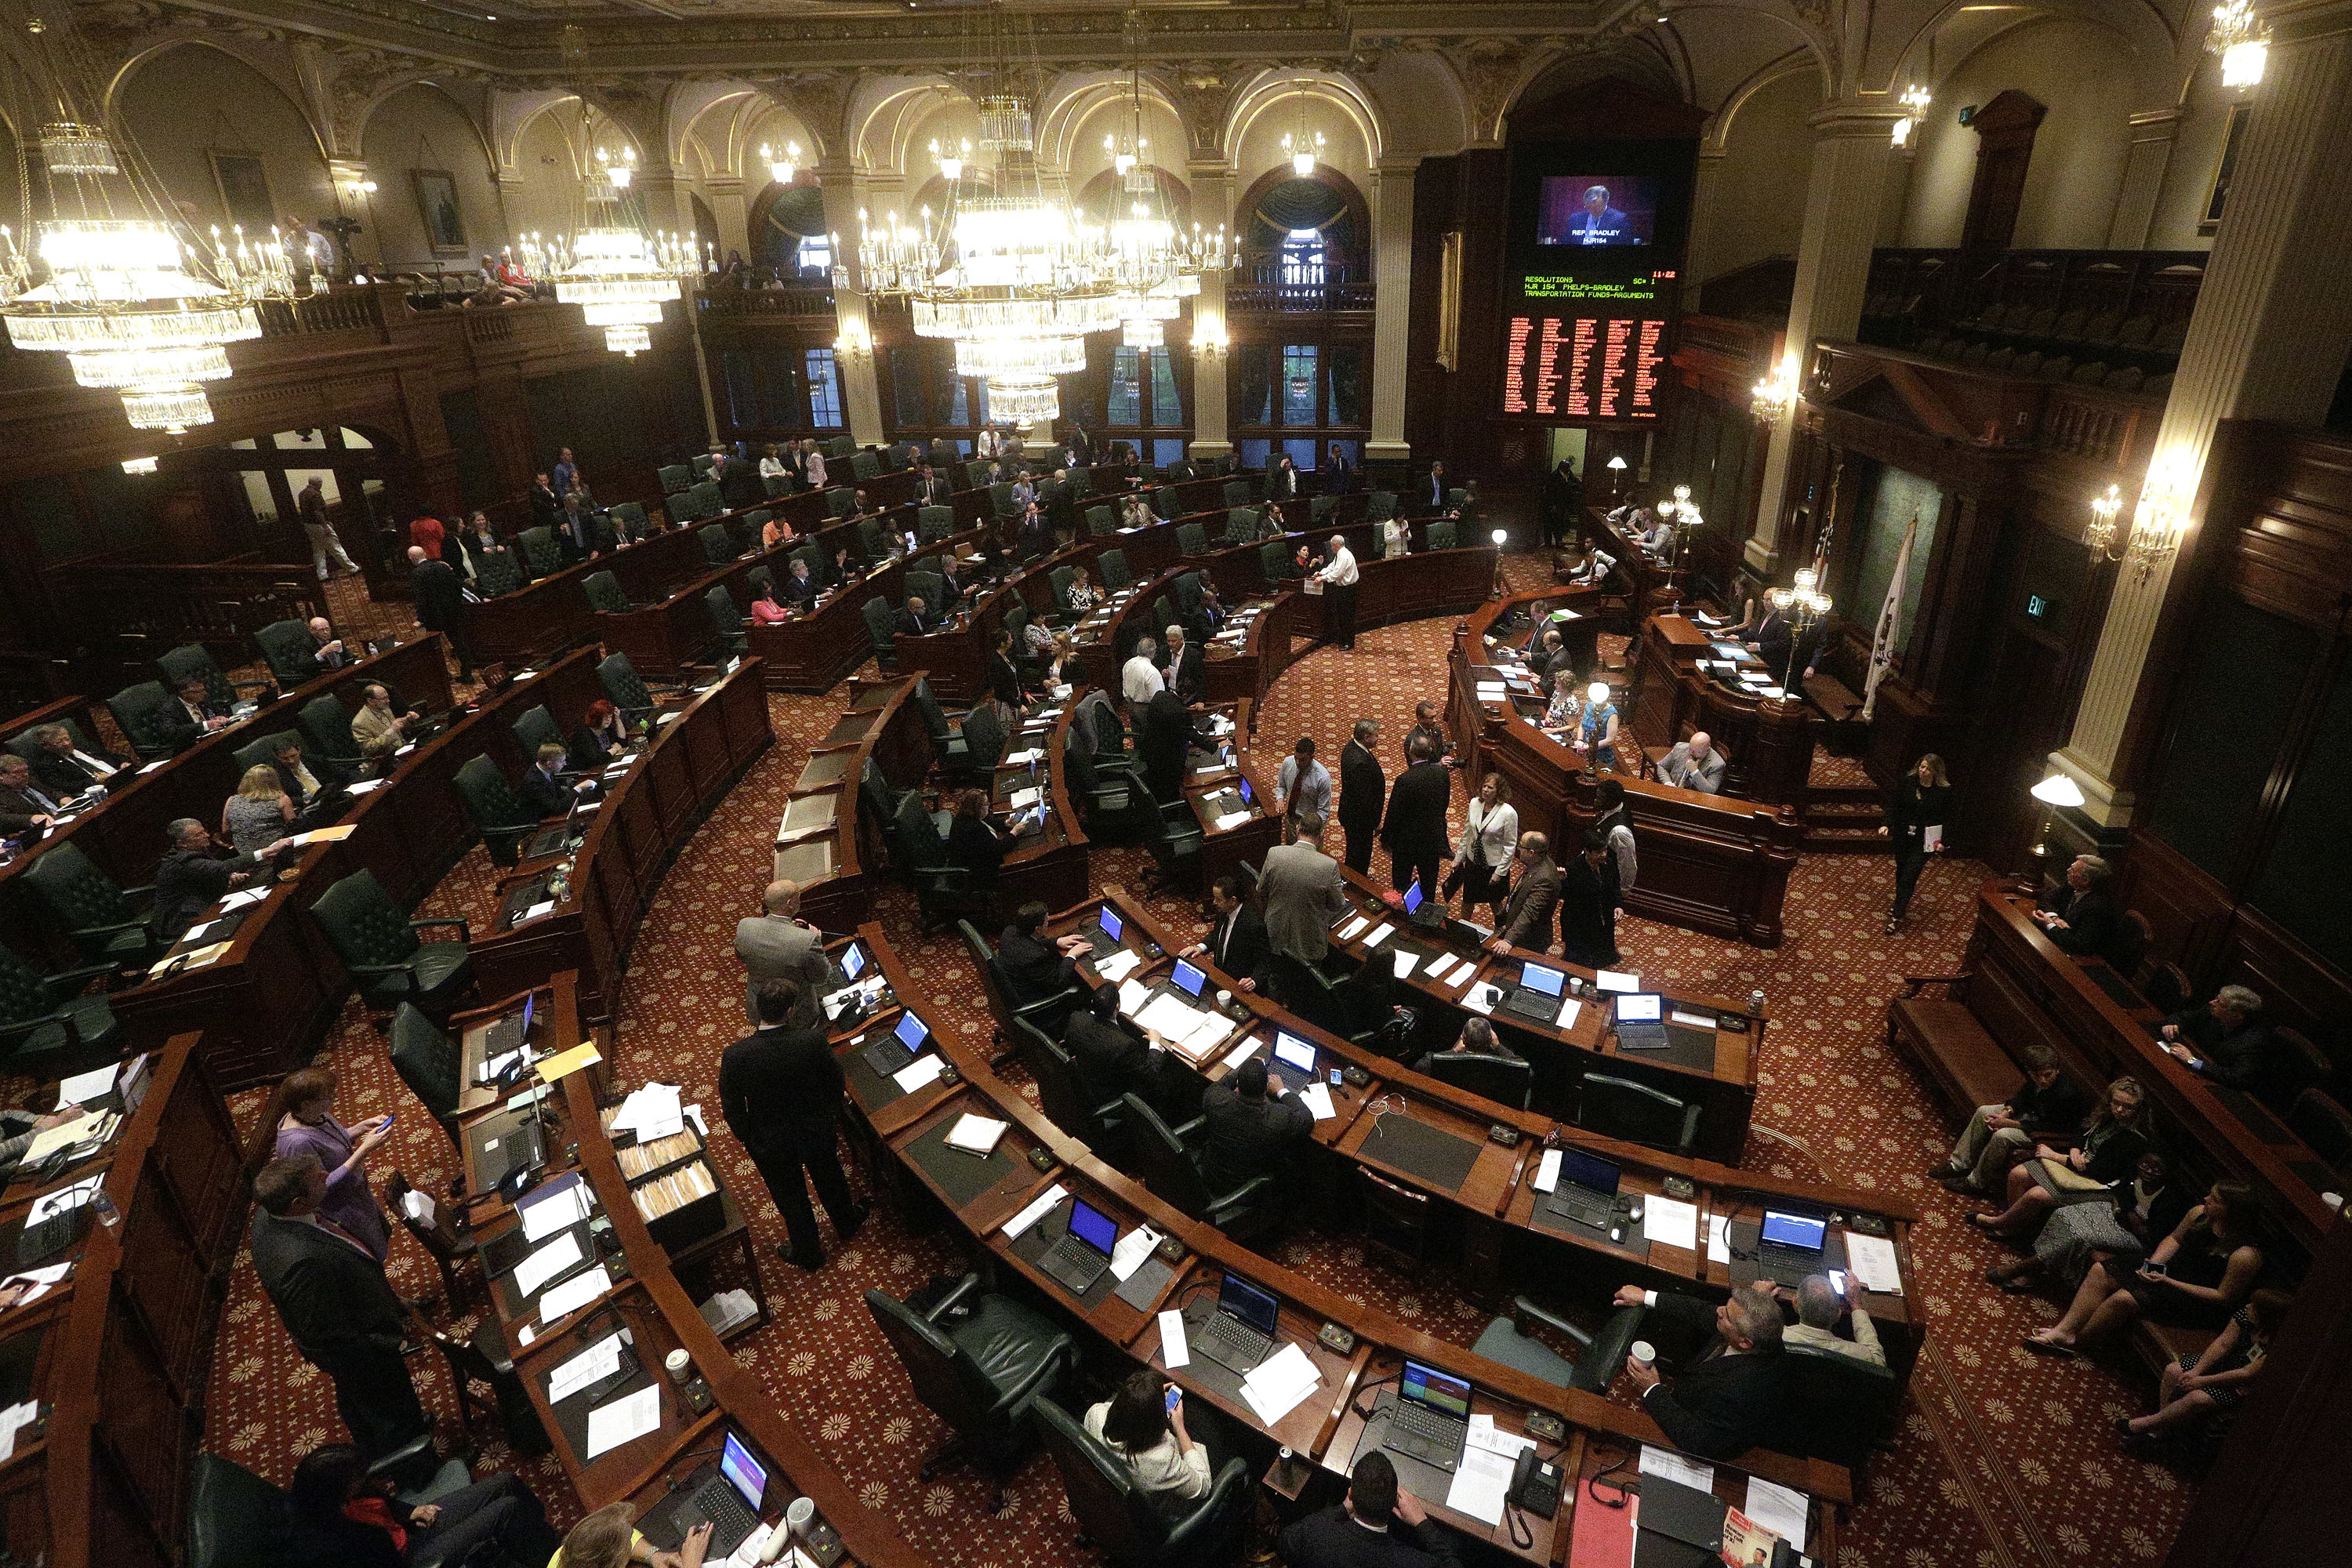 Illinois representatives gather on the House floor during session at the Illinois State Capitol Tuesday, May 31, 2016, in Springfield, Ill. (AP Photo/Seth Perlman)